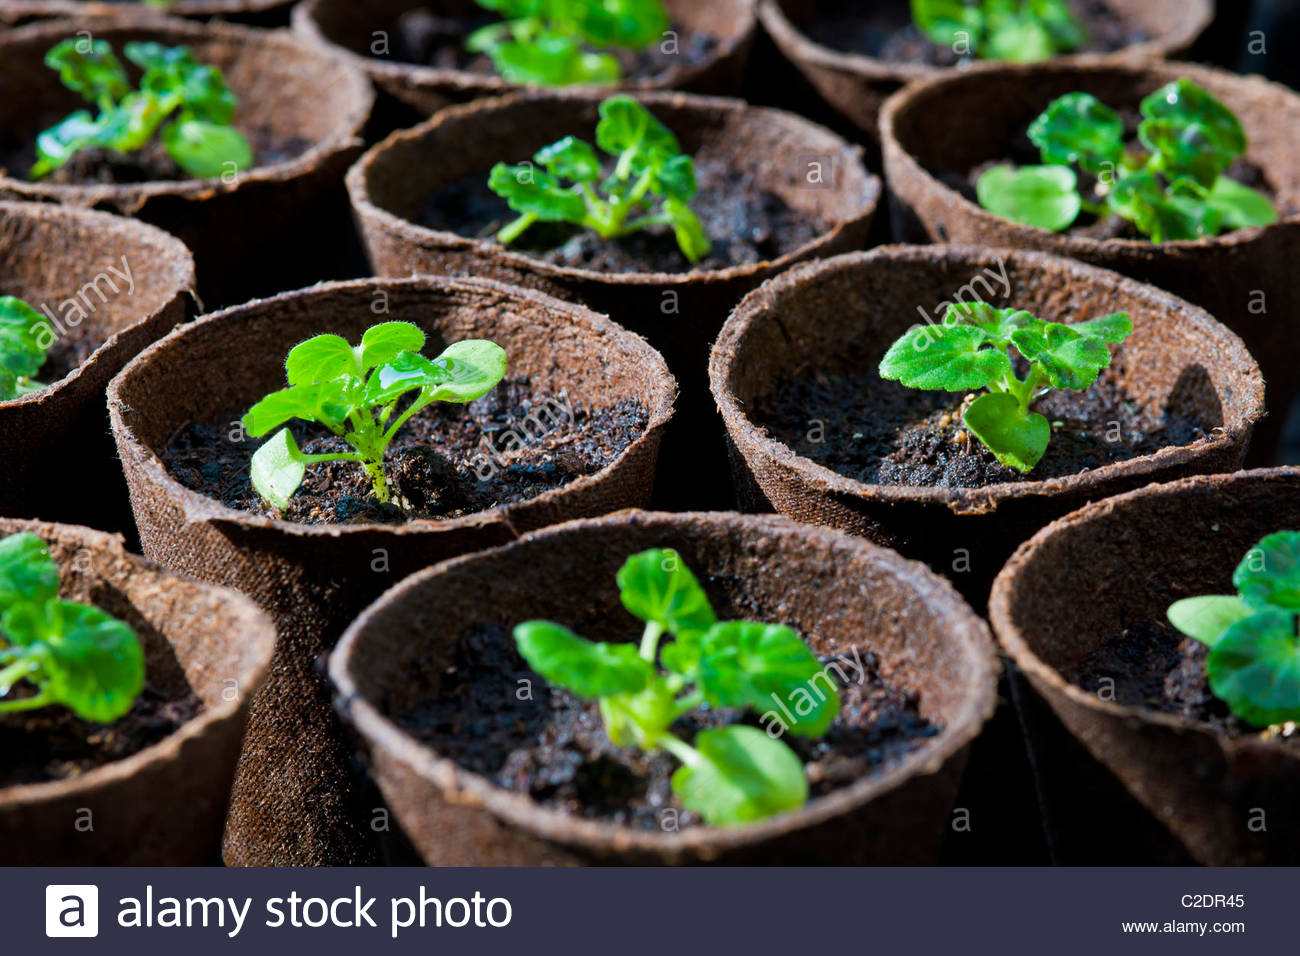 seedling pelargoniums geraniums potted on fibre bio-degradable pots small practical sustainable garden plant solution - Stock Image